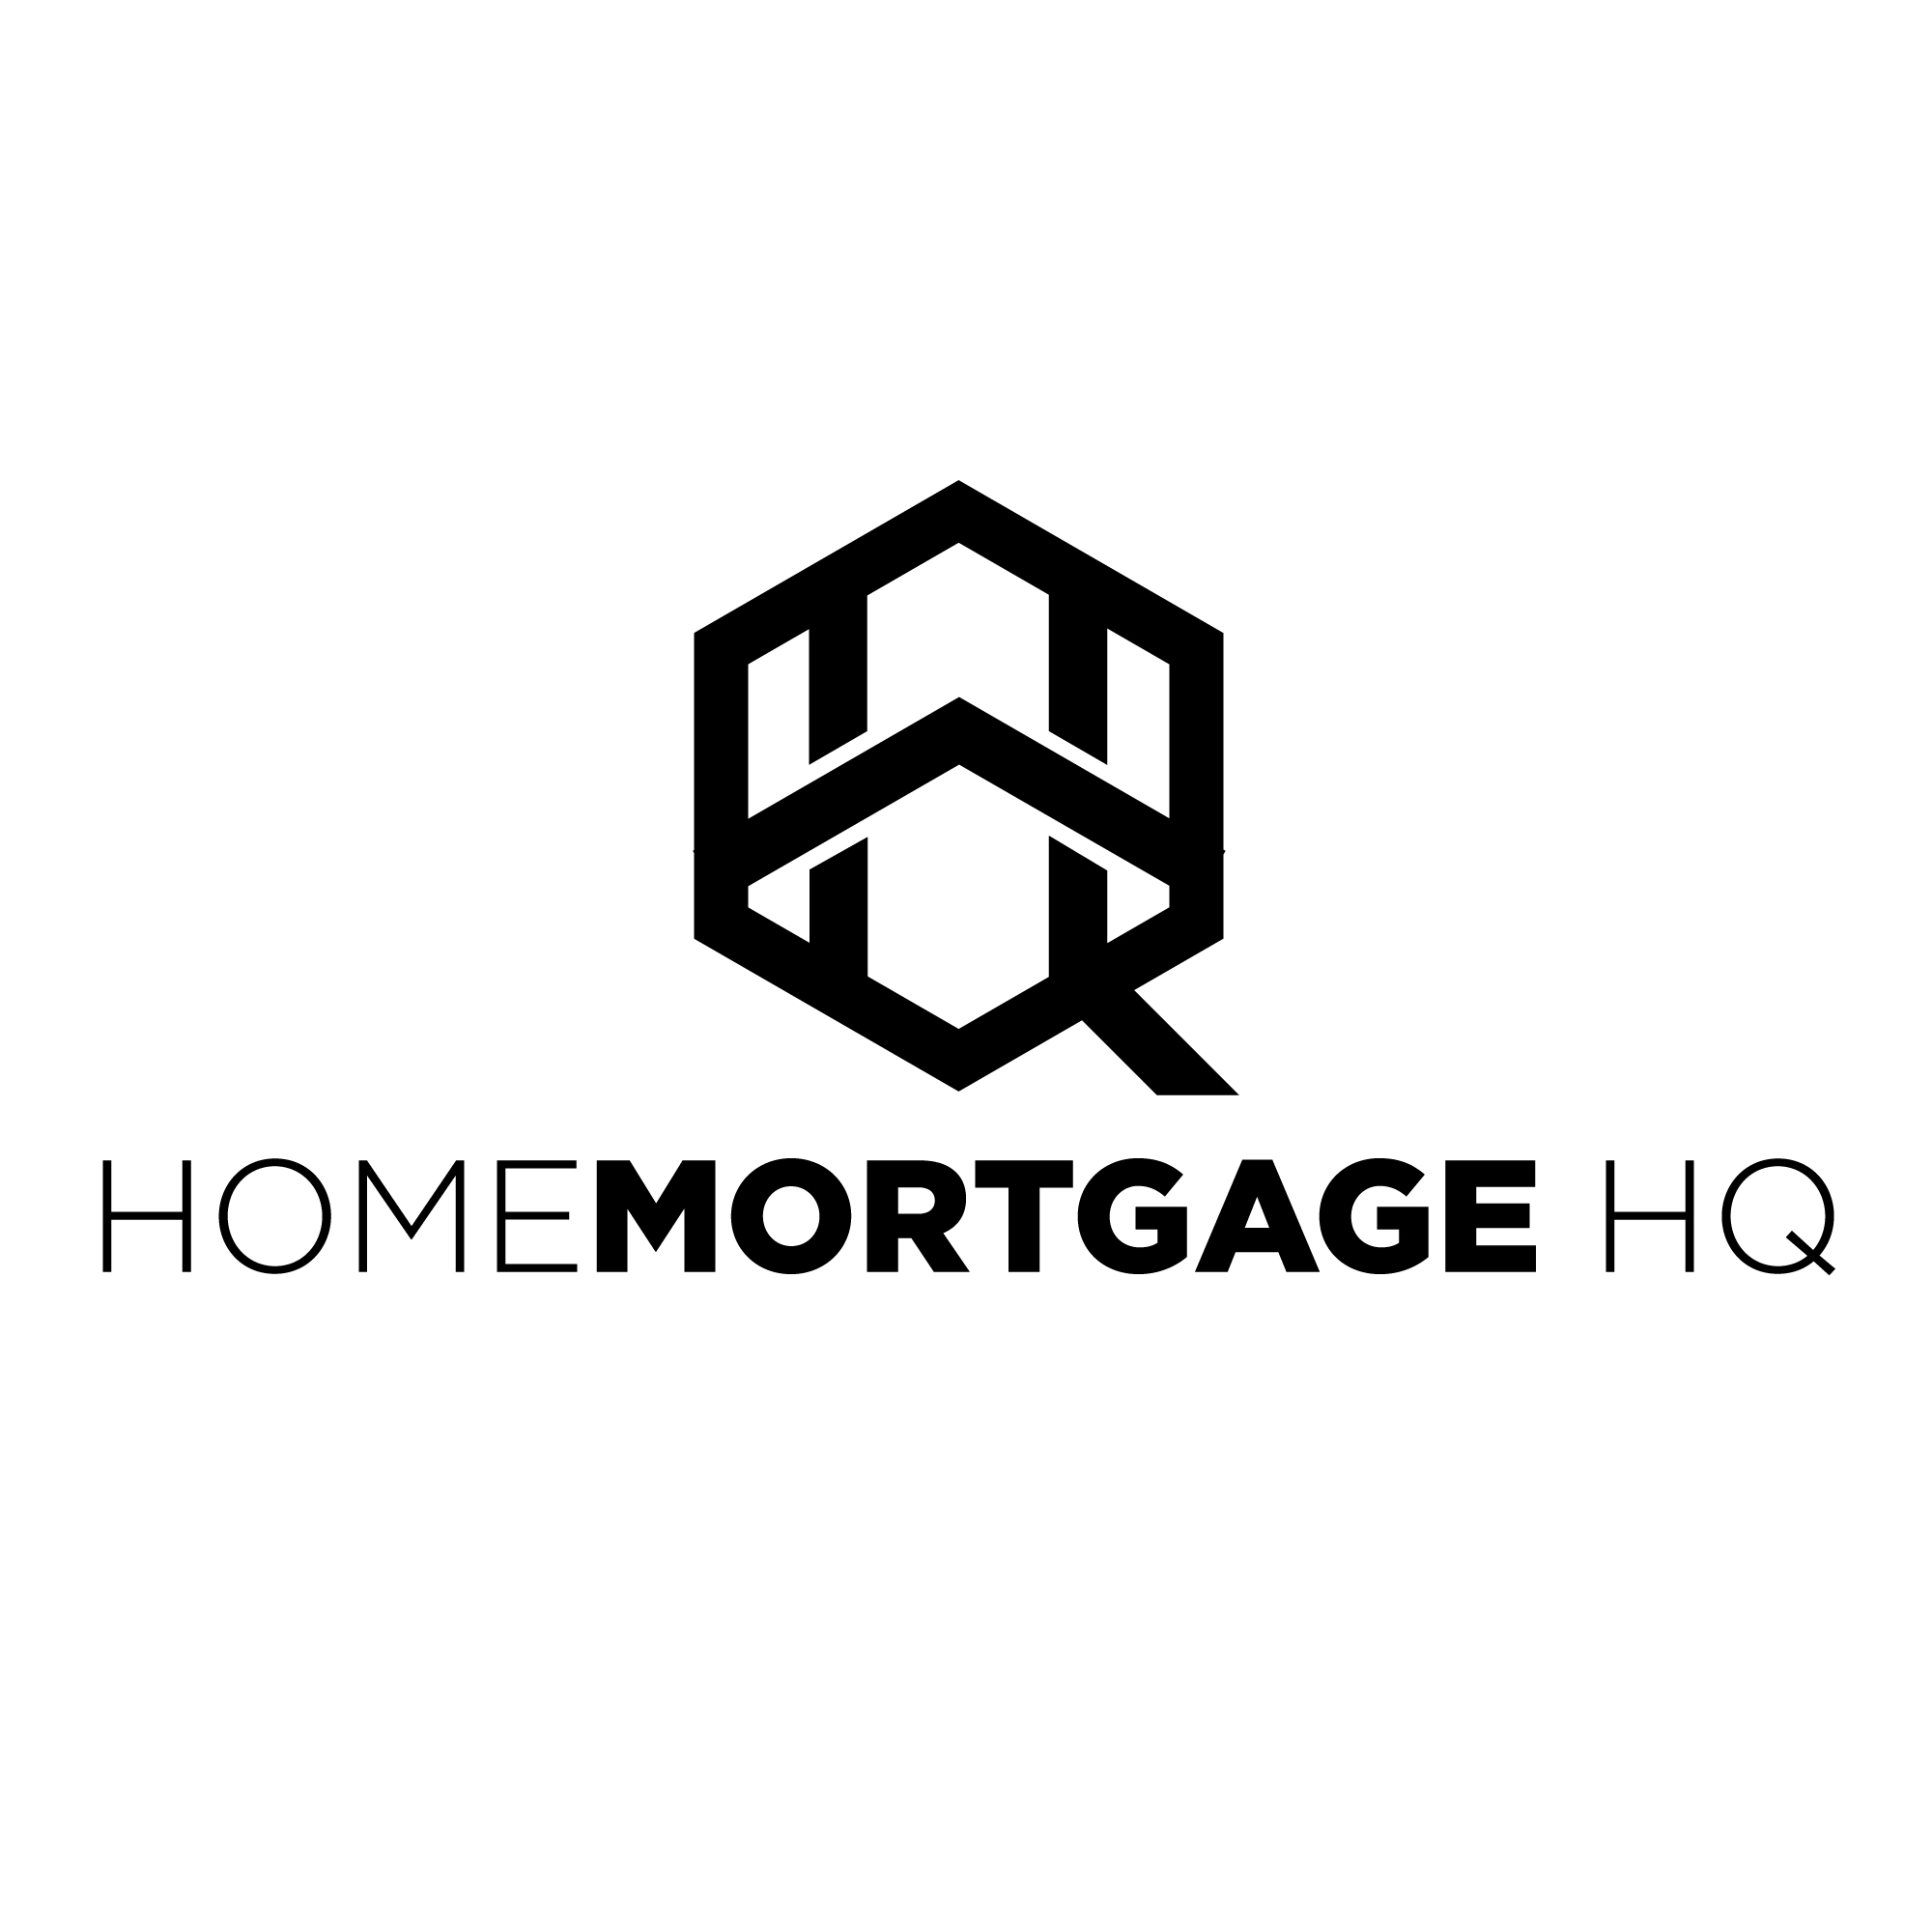 Home Mortgage HQ logo